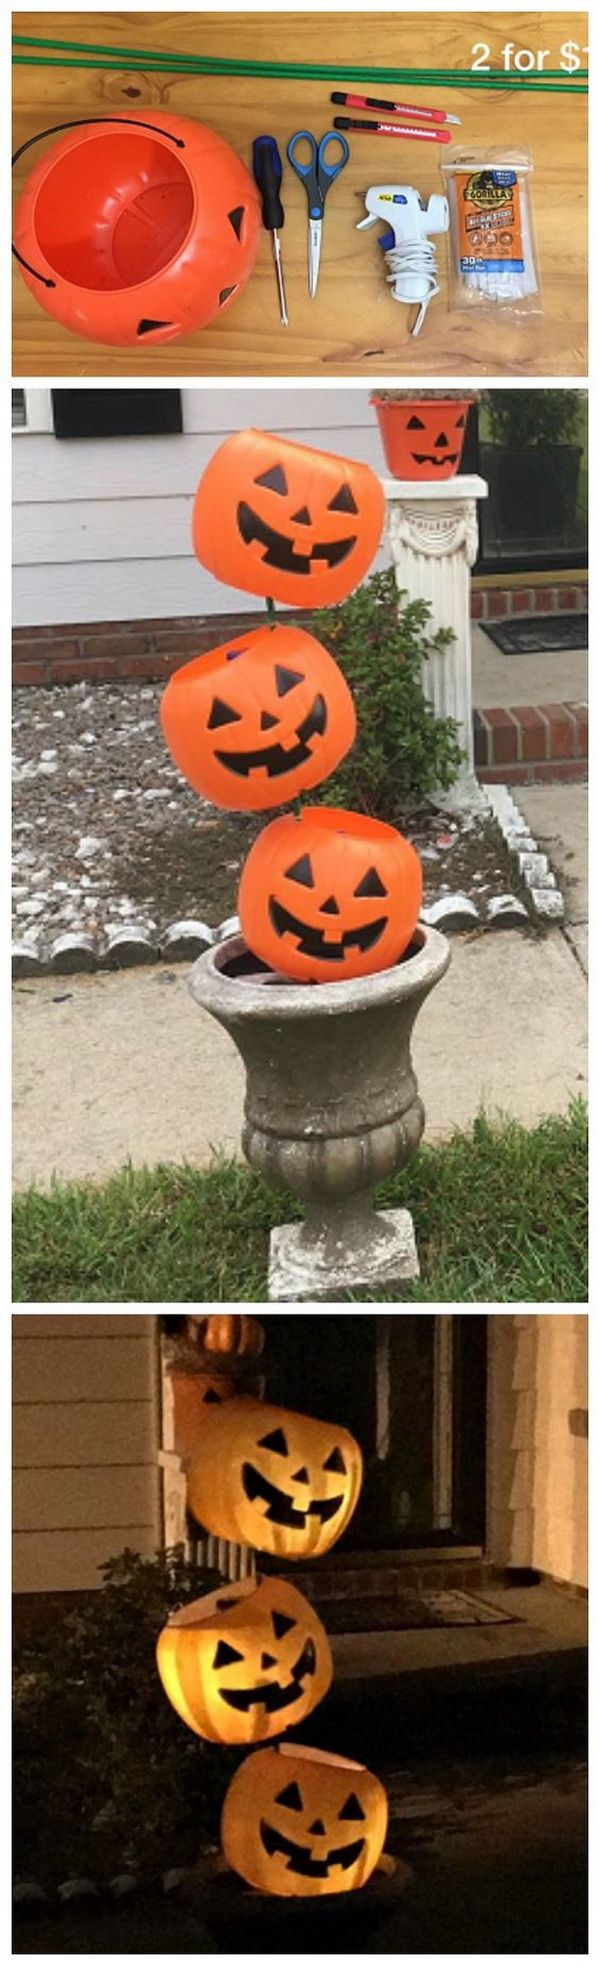 30+ Homemade Halloween Decoration Ideas Plastic pumpkins, Diy - Cheap Diy Halloween Decorations